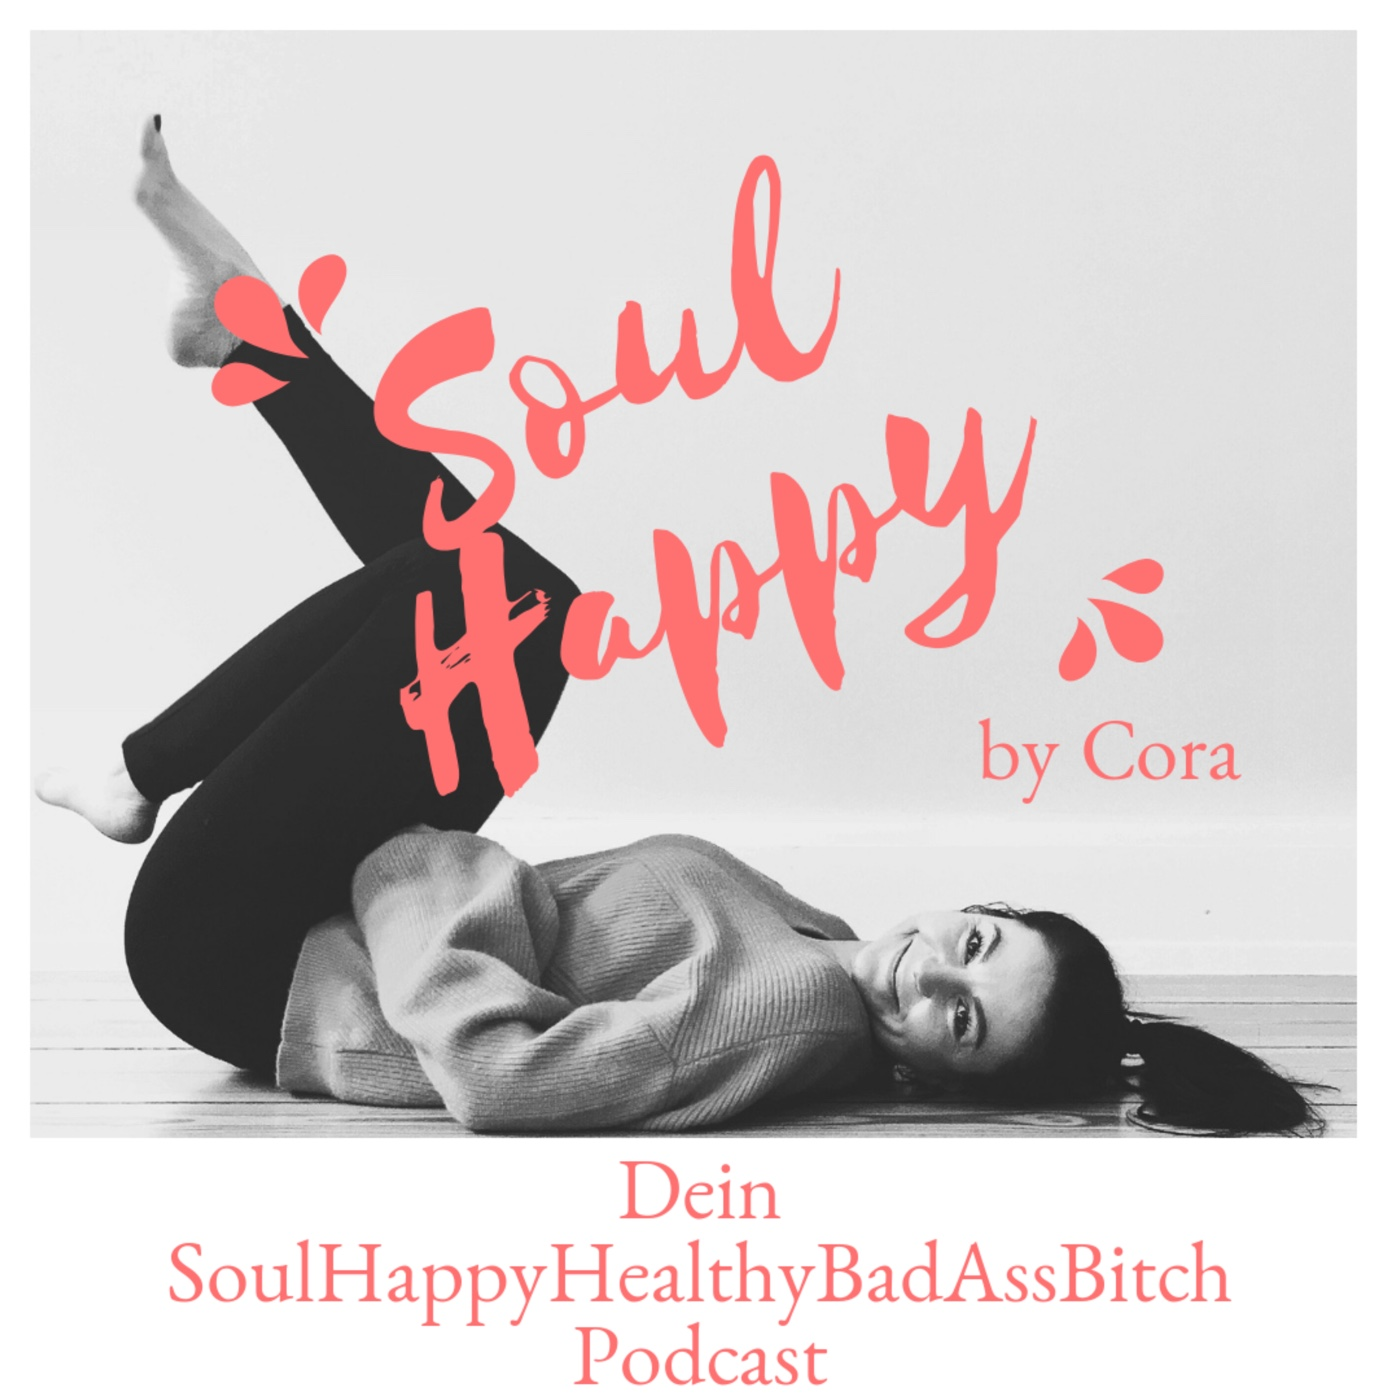 Soul Happy by Cora – Podcast Episode 1: be fully alive